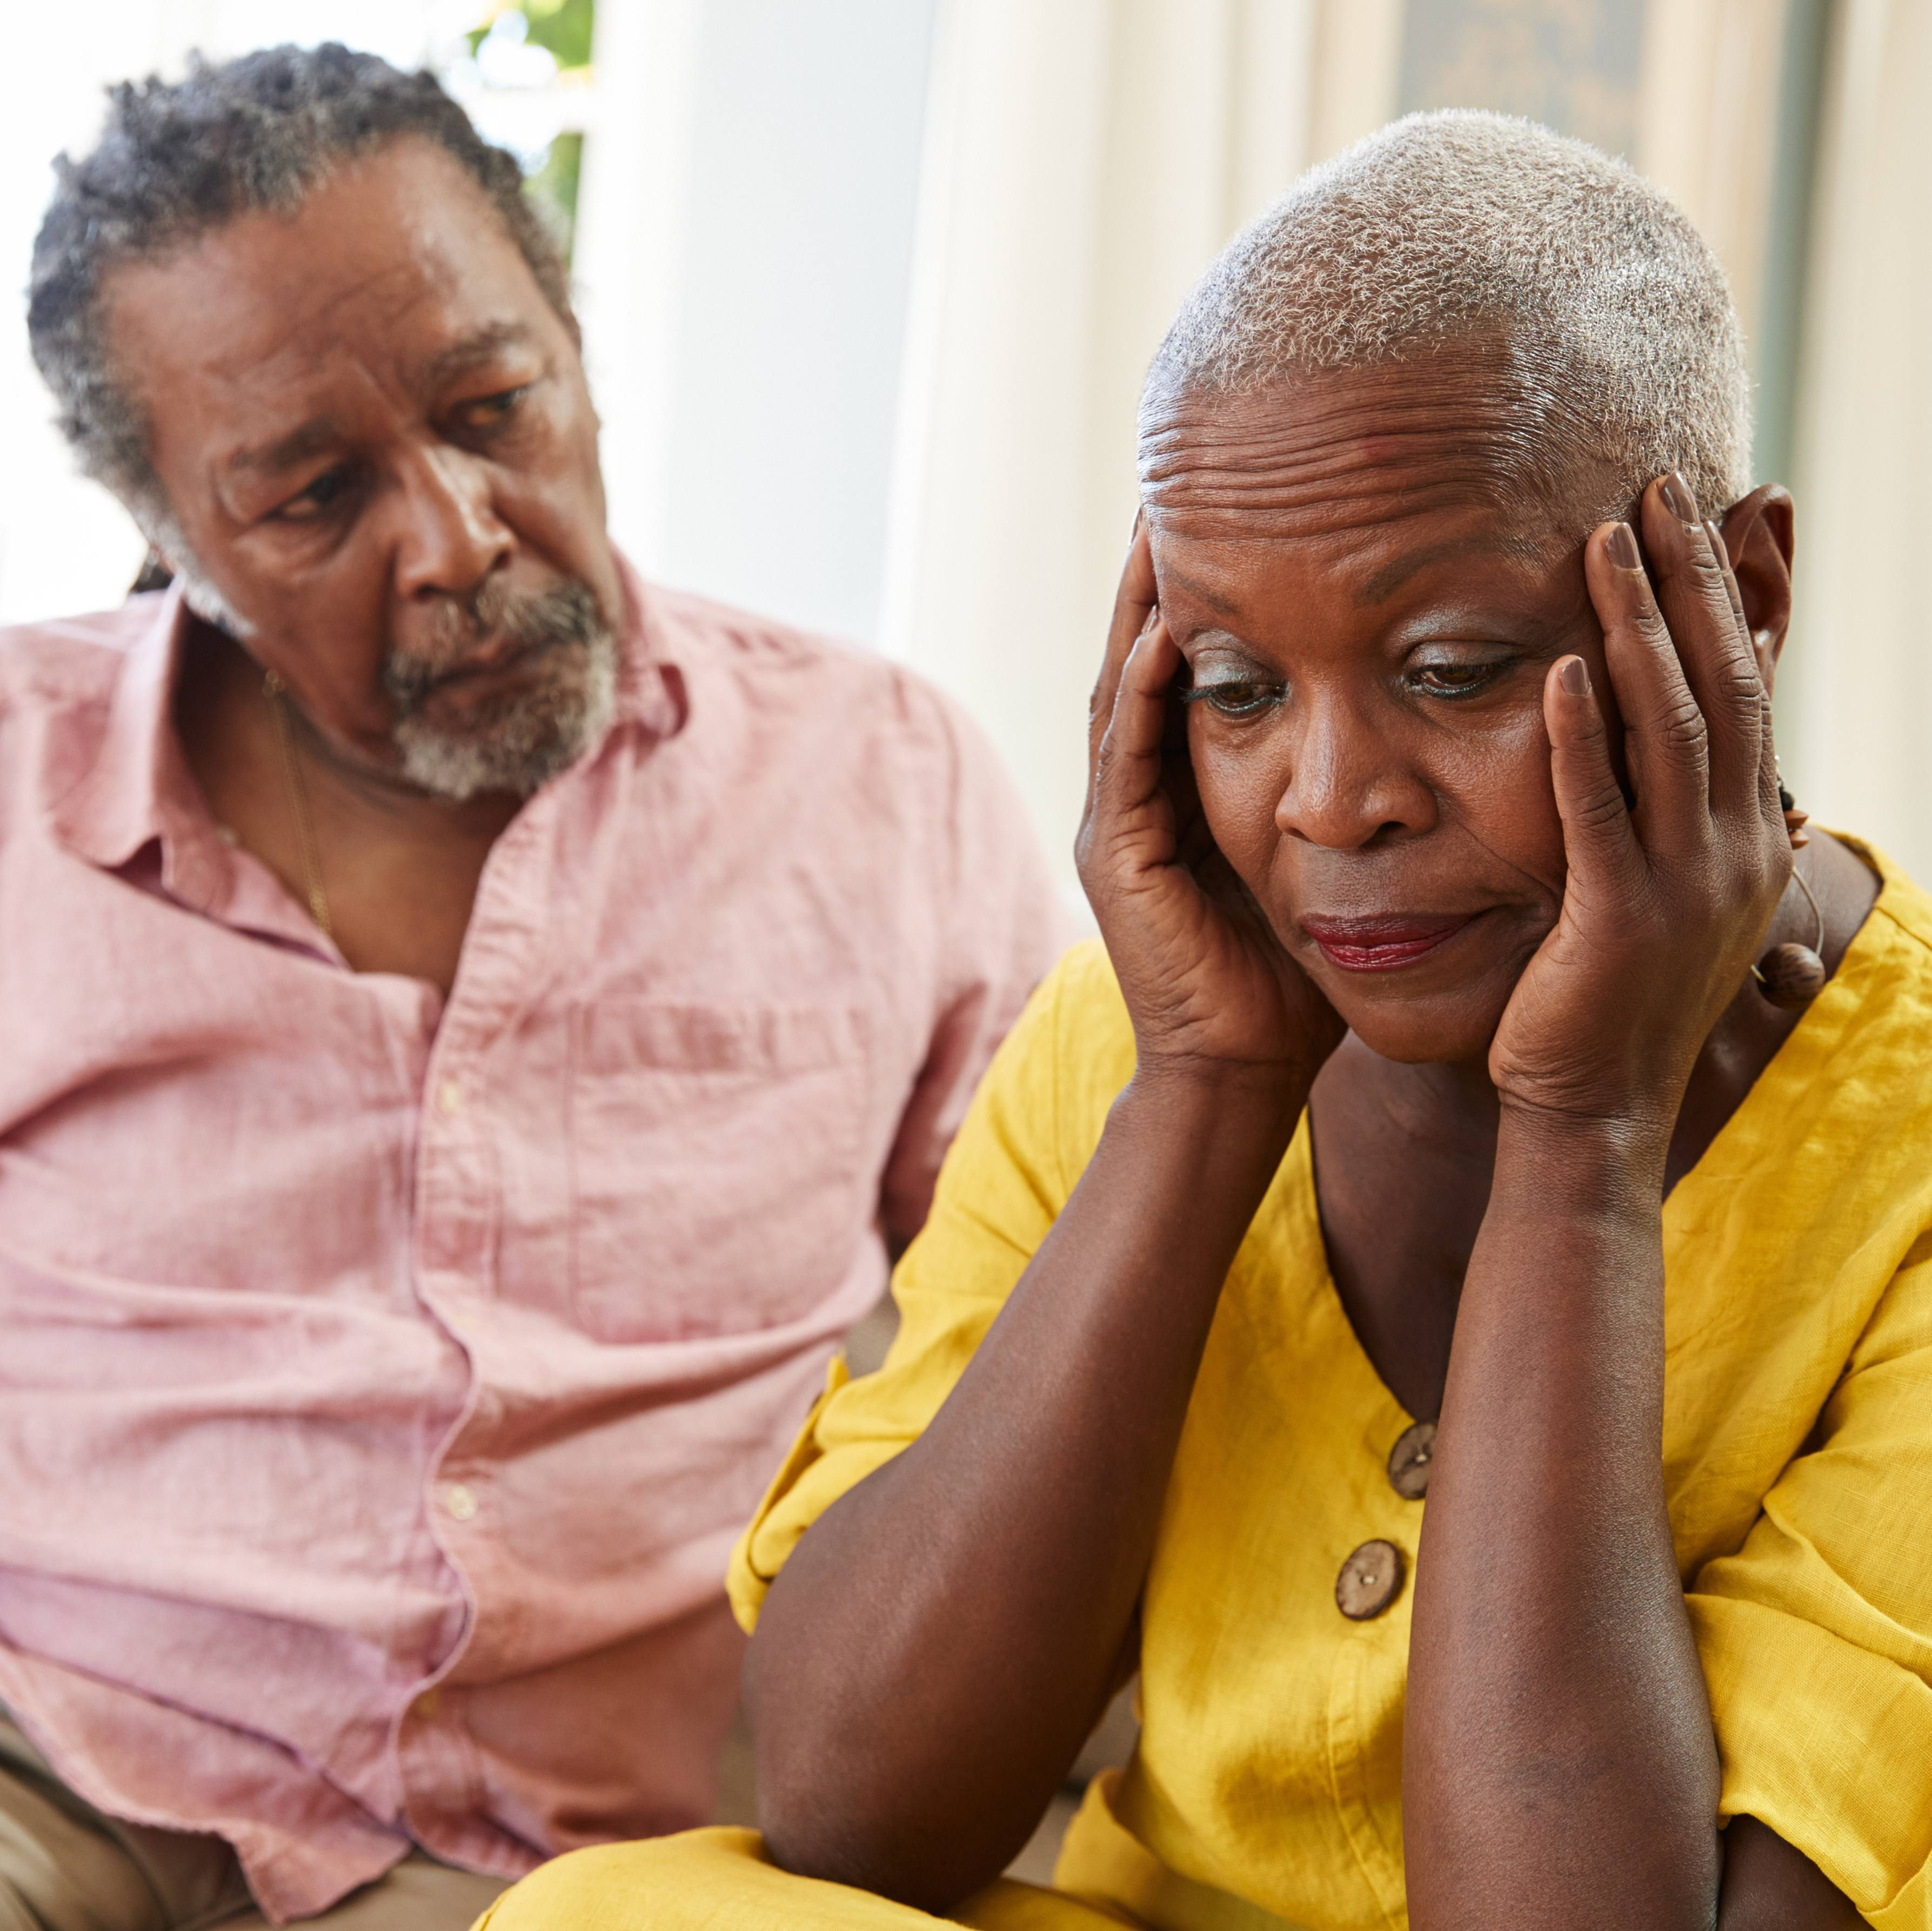 an older couple, a man and a woman, sitting on a couch together looking worried, concerned, sad as the woman holds her head in her hands perhaps having some depression or memory and cognitive function problems